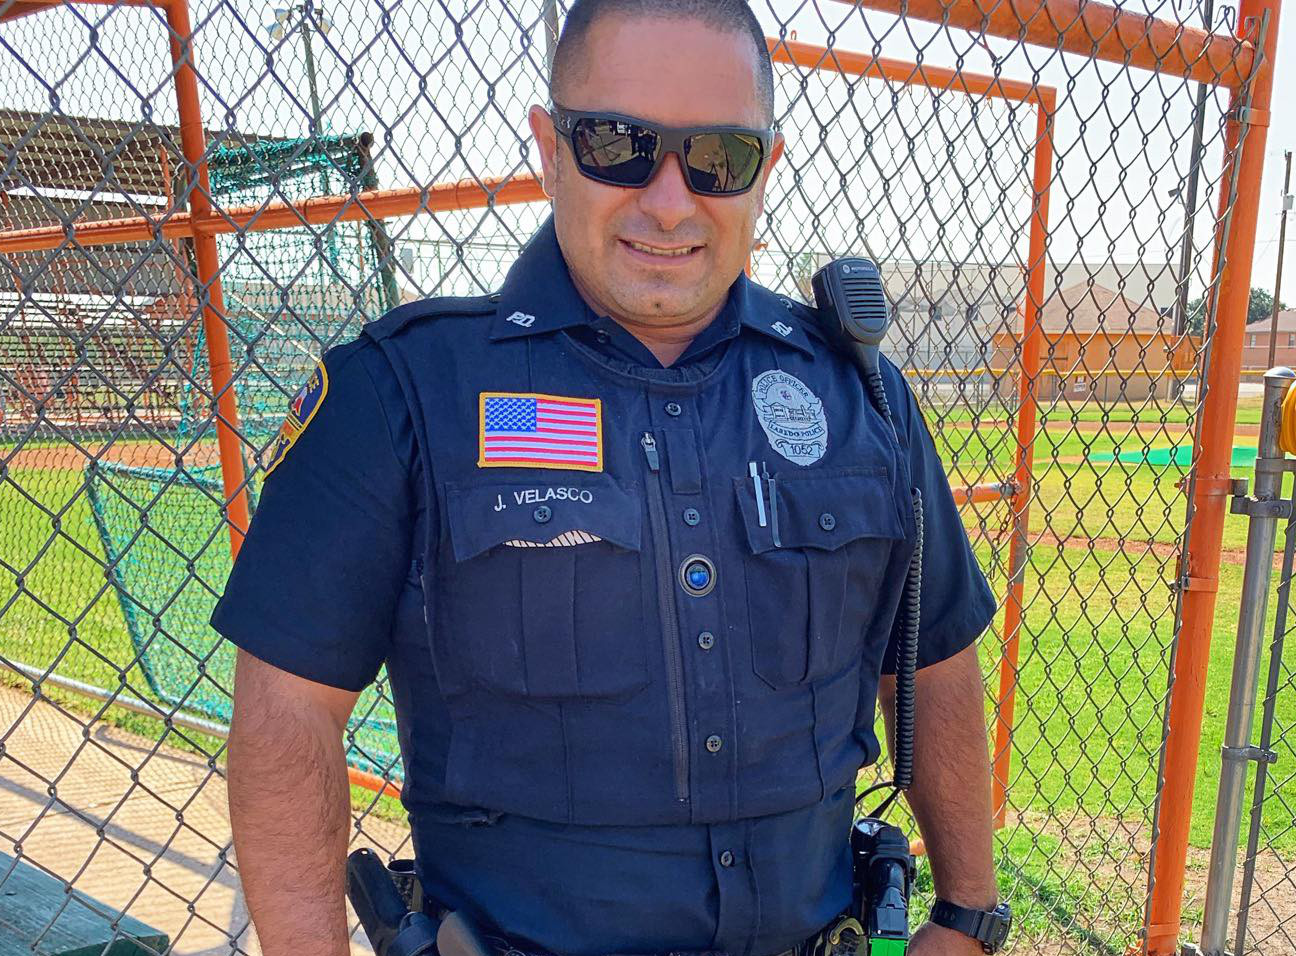 Laredo Police Officer with a lens in the middle of his vest